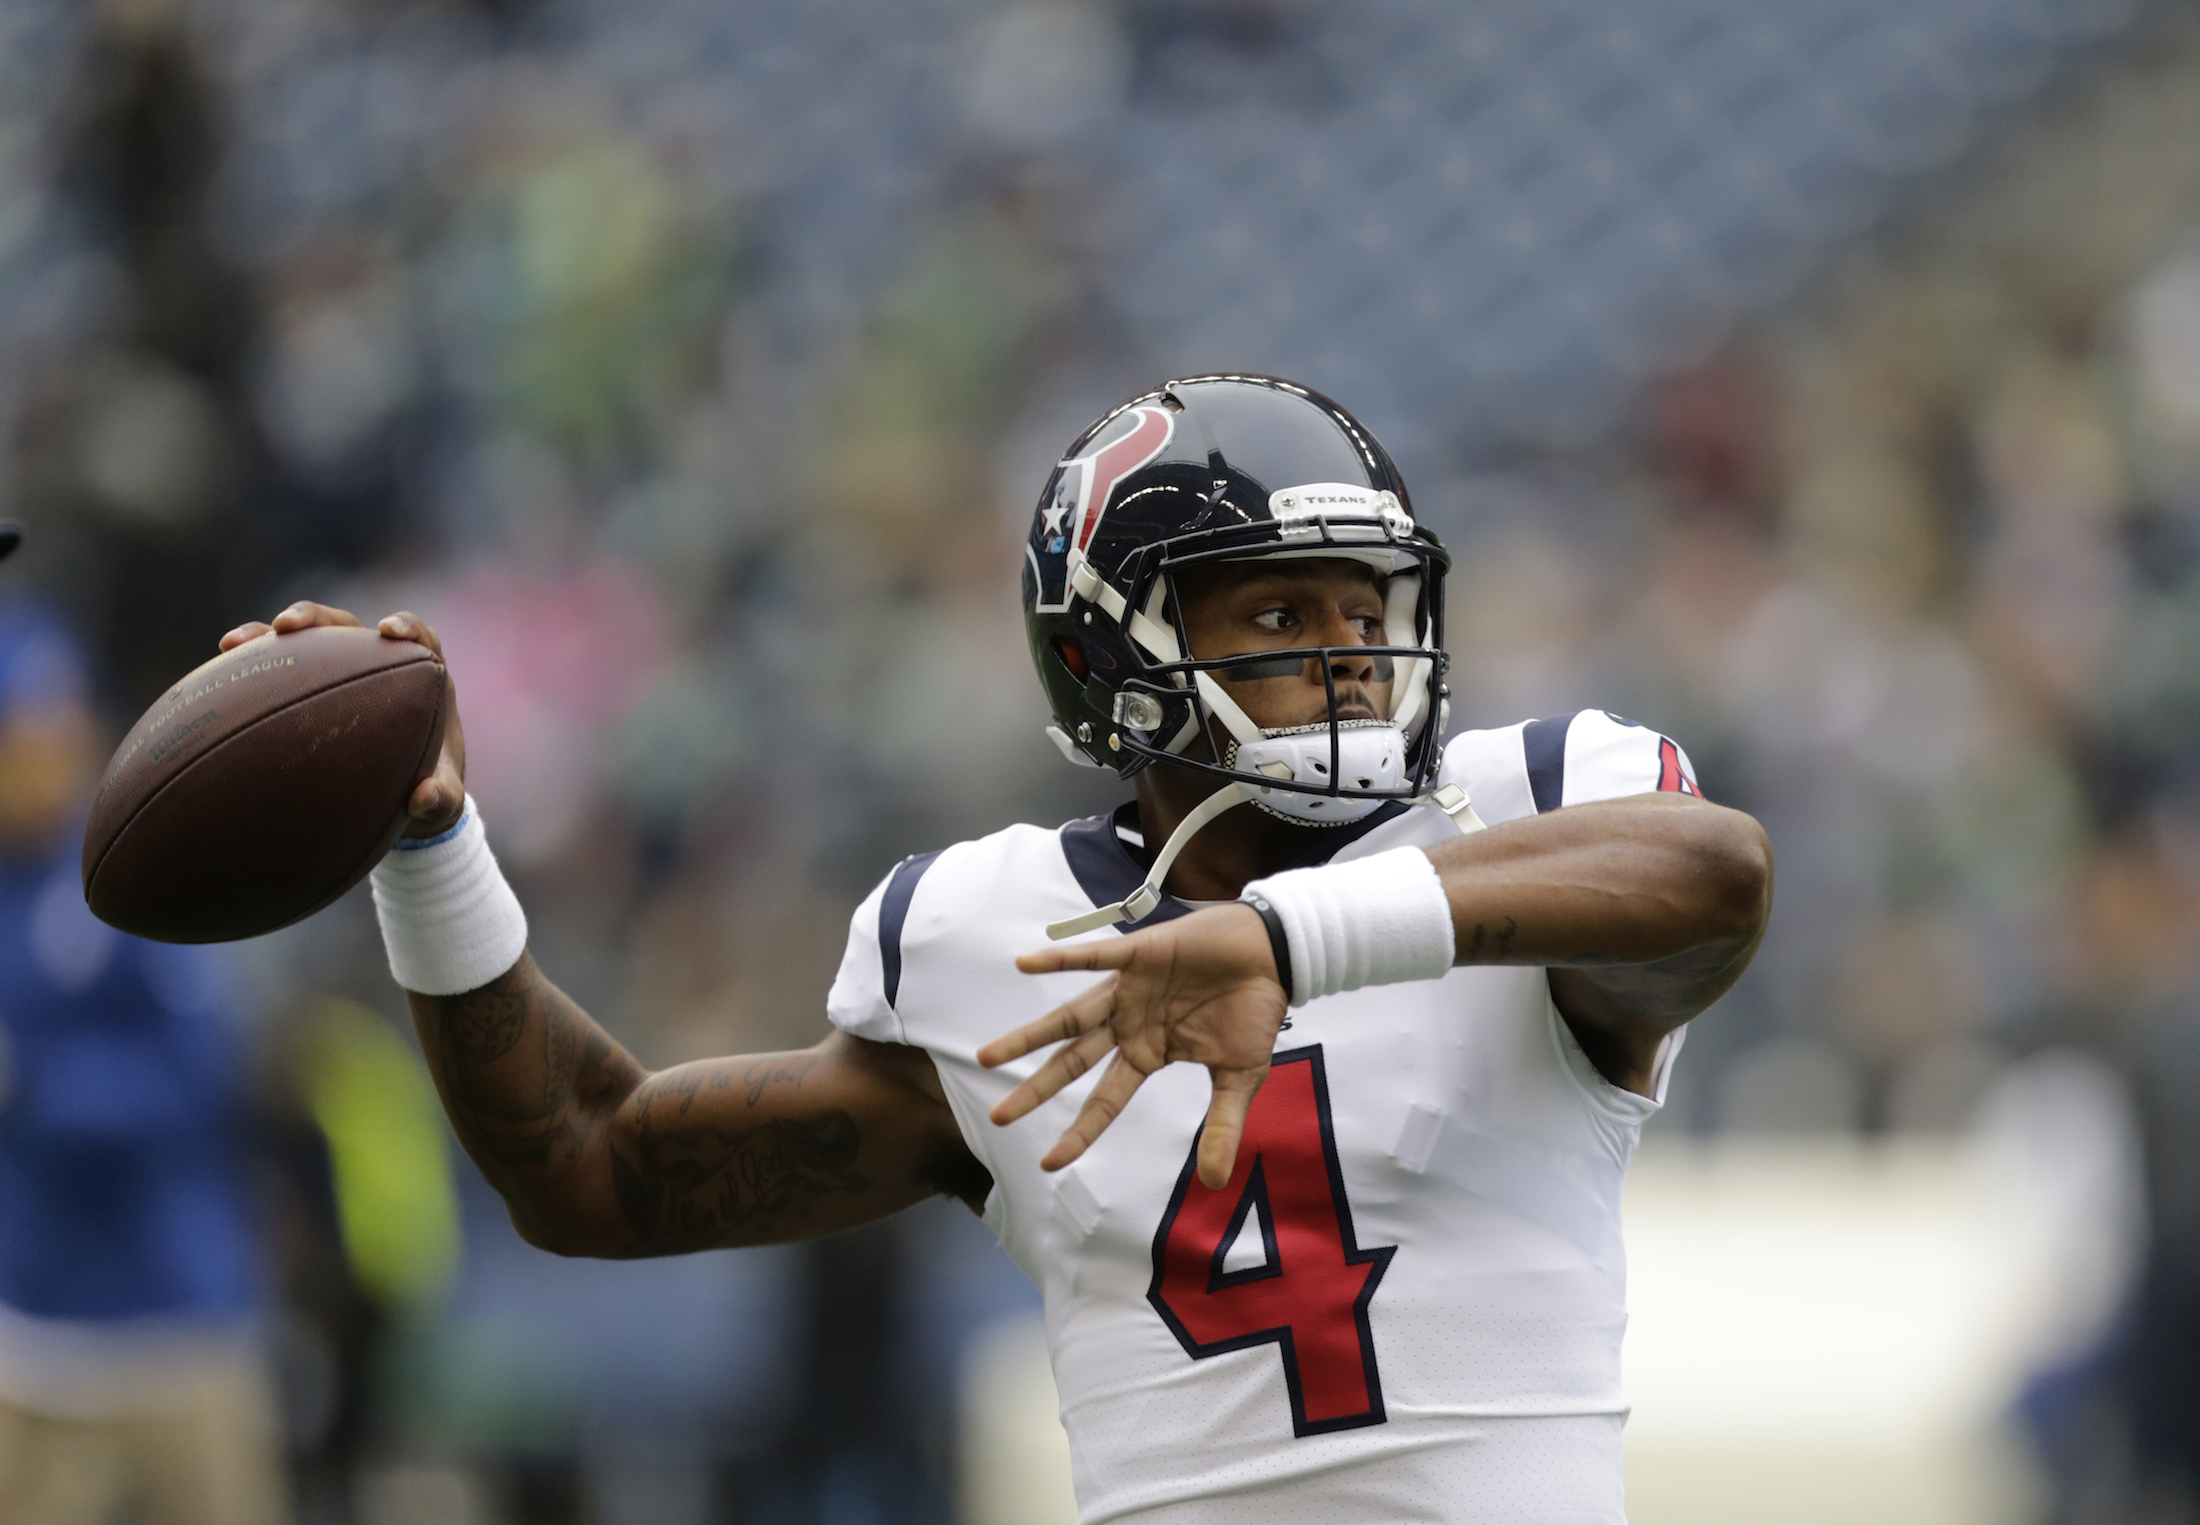 Houston Texans quarterback Deshaun Watson passes during warmups before an NFL football game against the Seattle Seahawks, Sunday, Oct. 29, 2017, in Seattle. (AP Photo/Stephen Brashear)